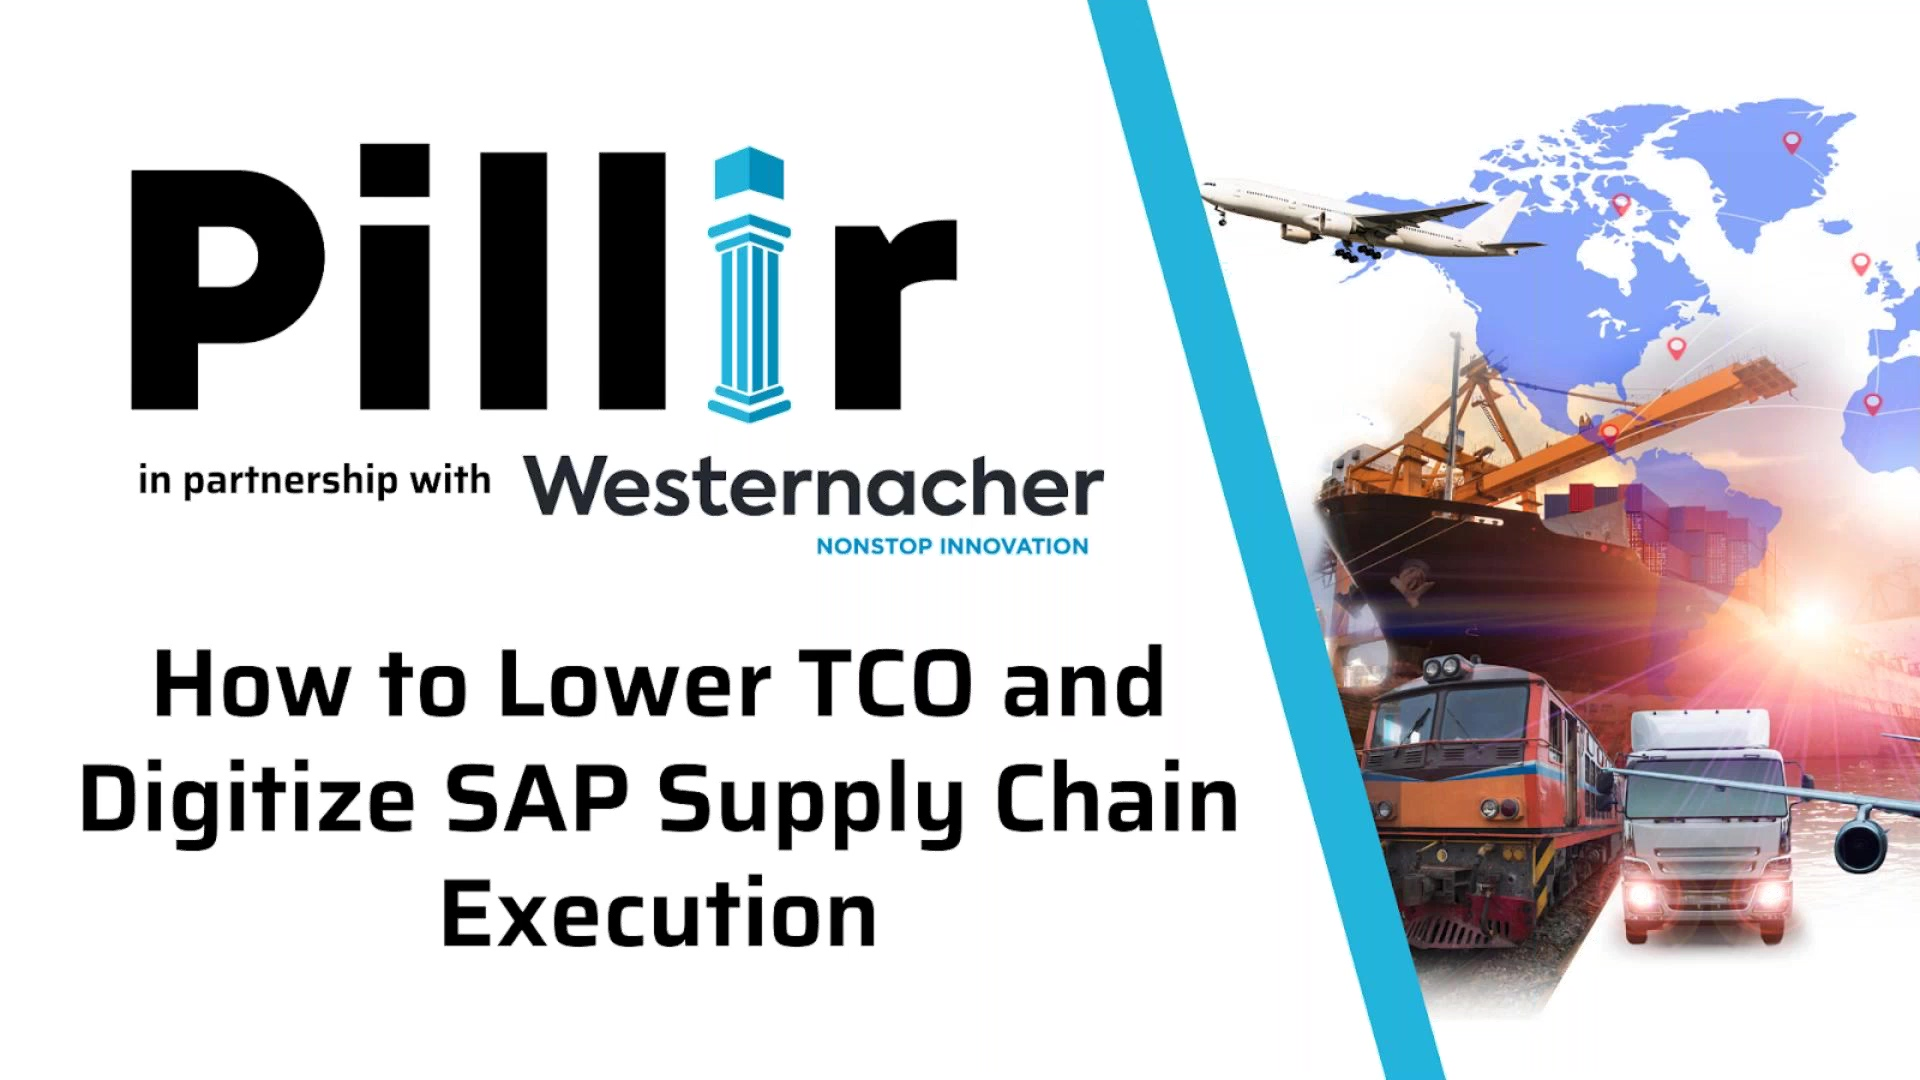 How to Lower TCO and Digitize SAP Supply Chain Execution